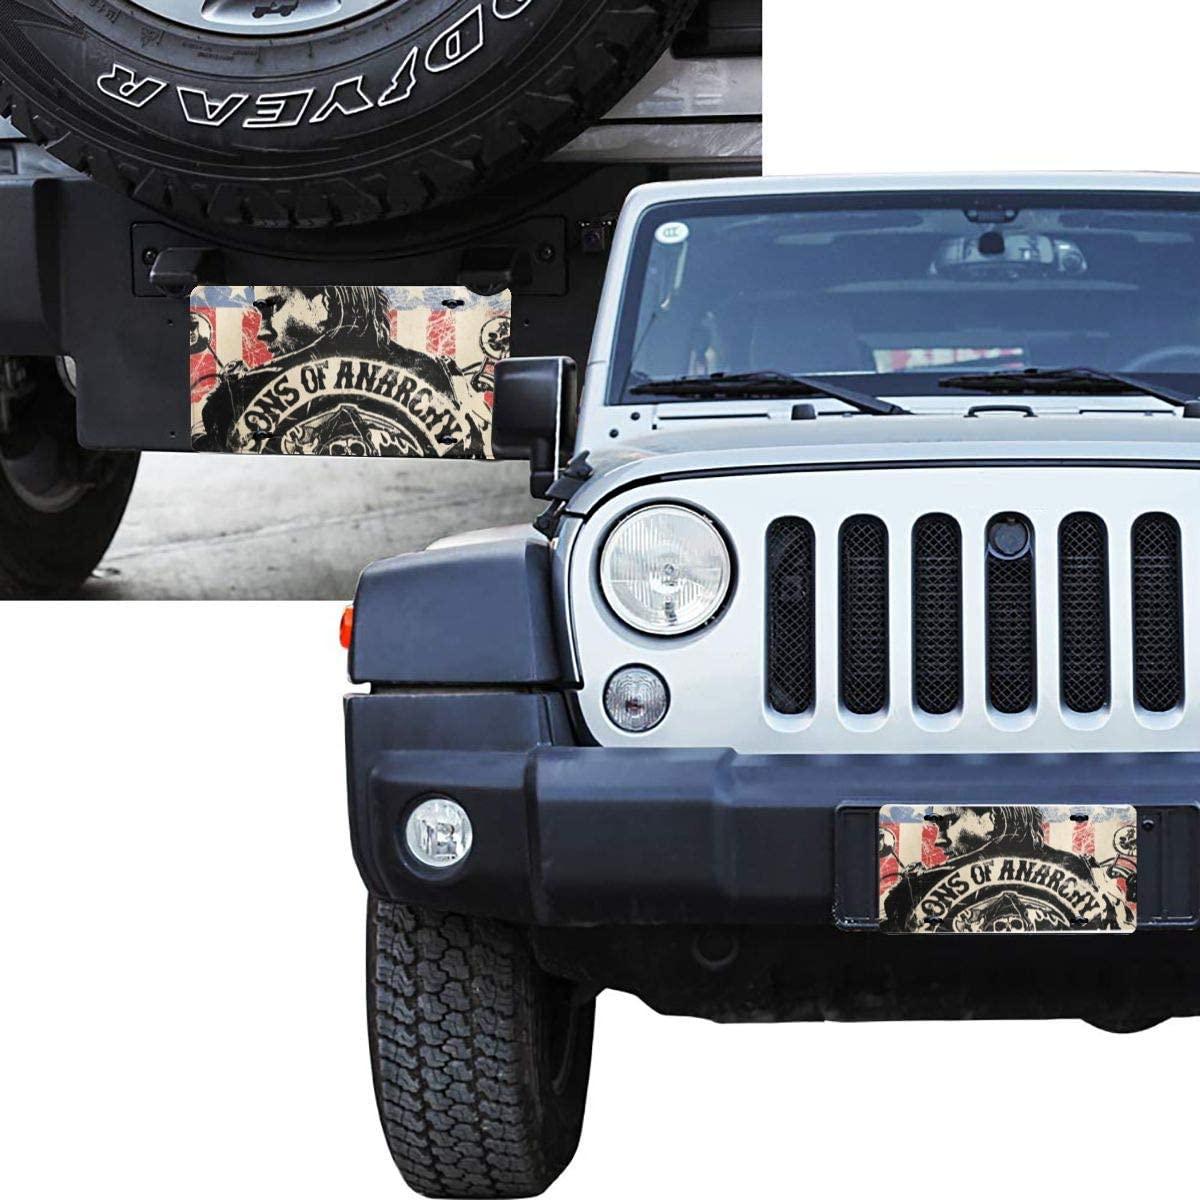 WINTERSUNNY Combined Dark Anarchy License Plate Frame USA Car Licenses Plate Covers Waterproof License Tag Aluminium Metal Frames with 4 Holes and Screws